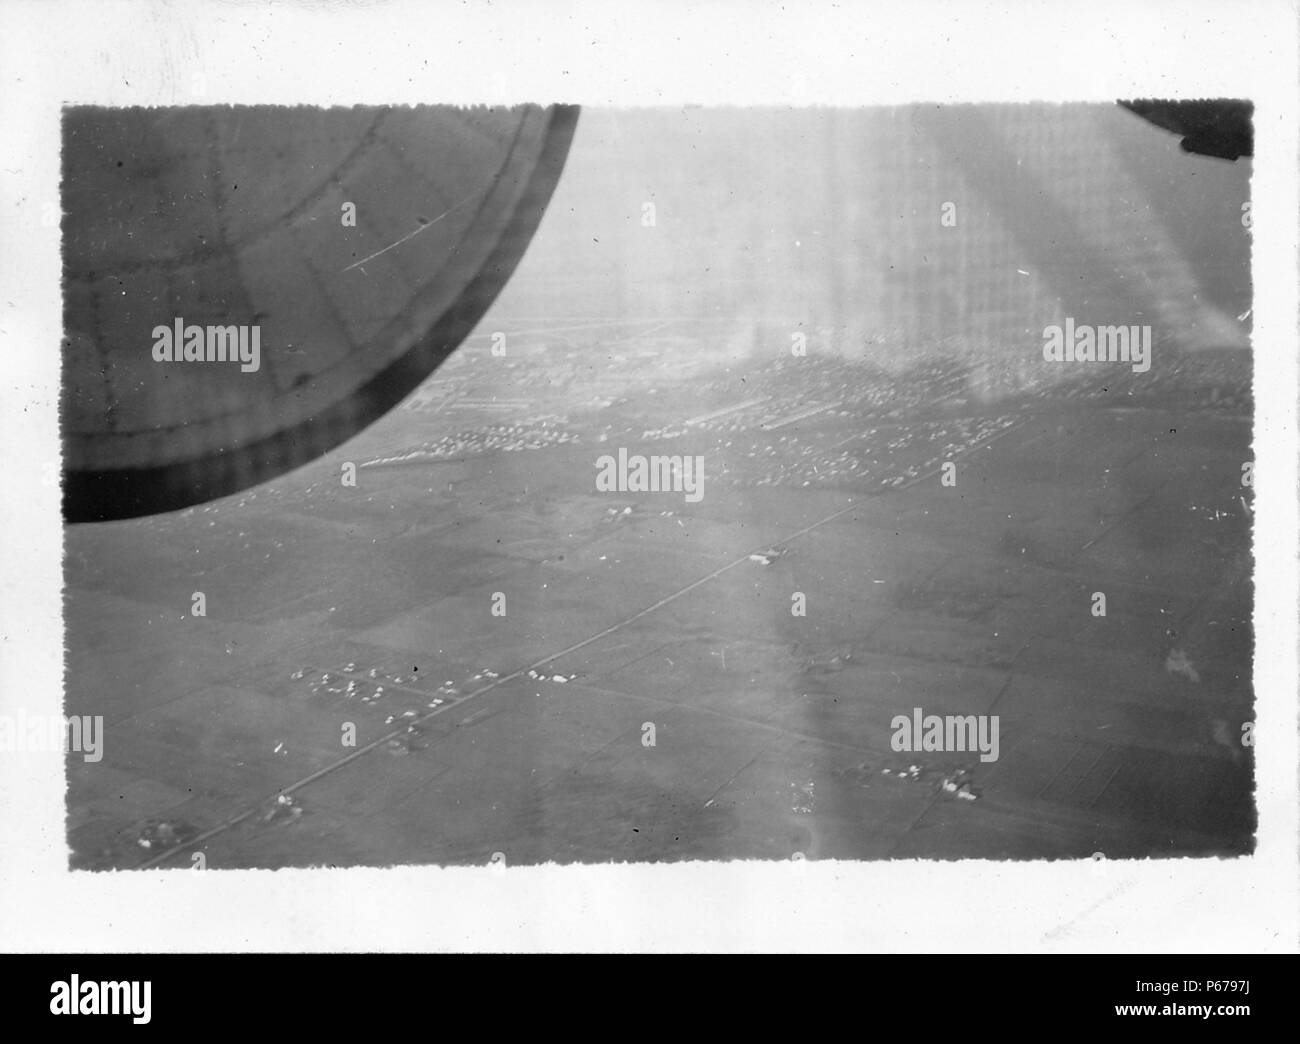 Black and white photograph, shot from the interior of an airplane in flight, looking down on rectangular patches of flat, partially cultivated, partially populated land, with part of the engine visible in the upper foreground, likely photographed during World War II, 1945. () - Stock Image